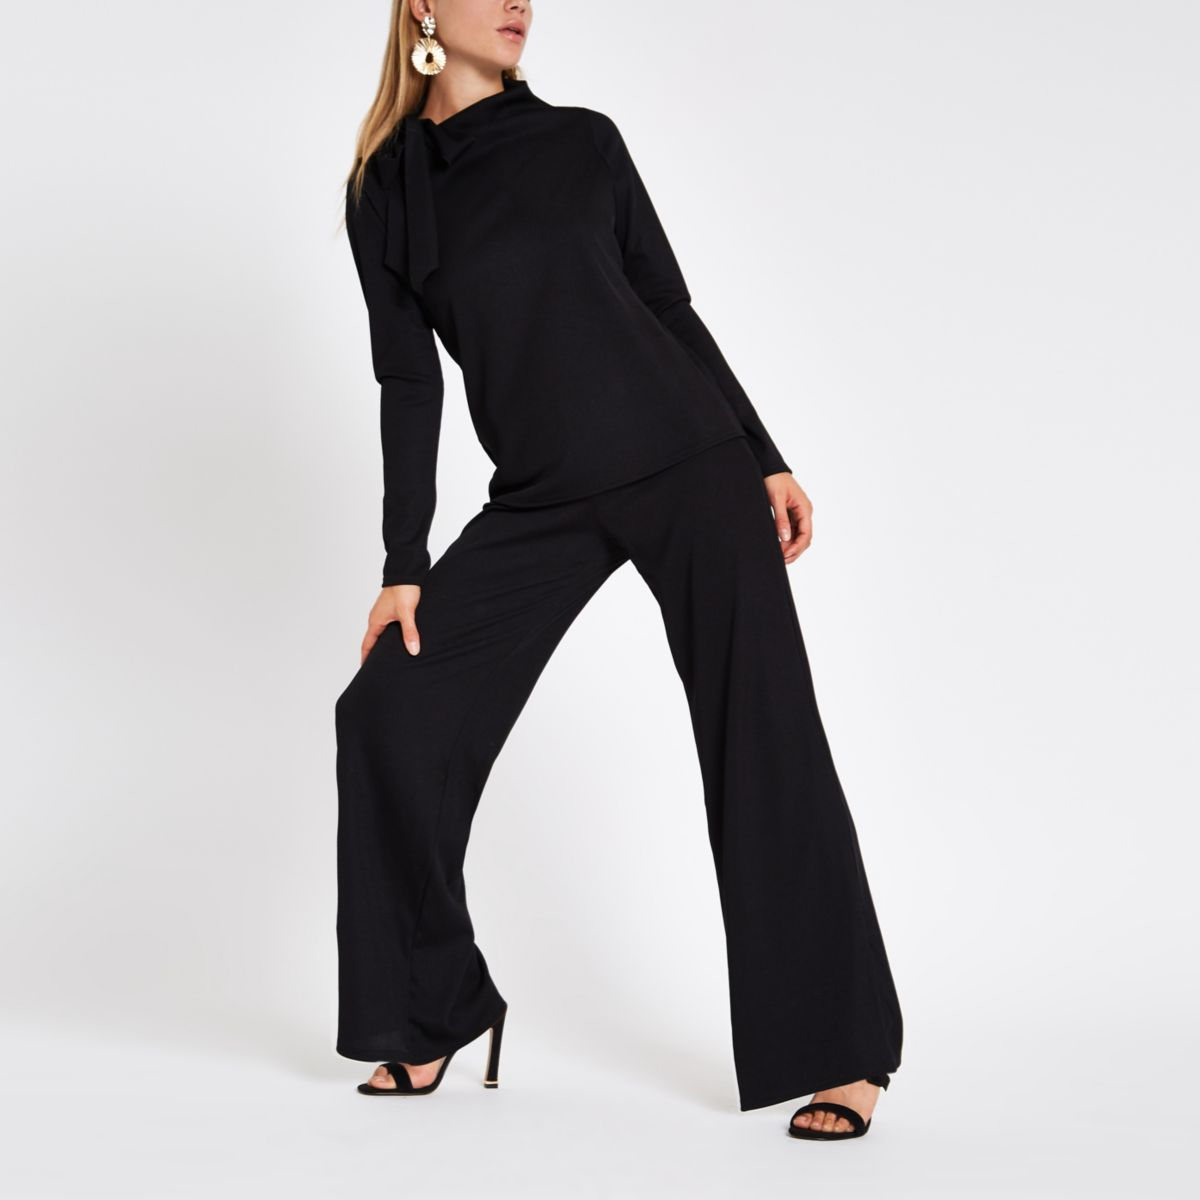 Black jersey wide leg trousers